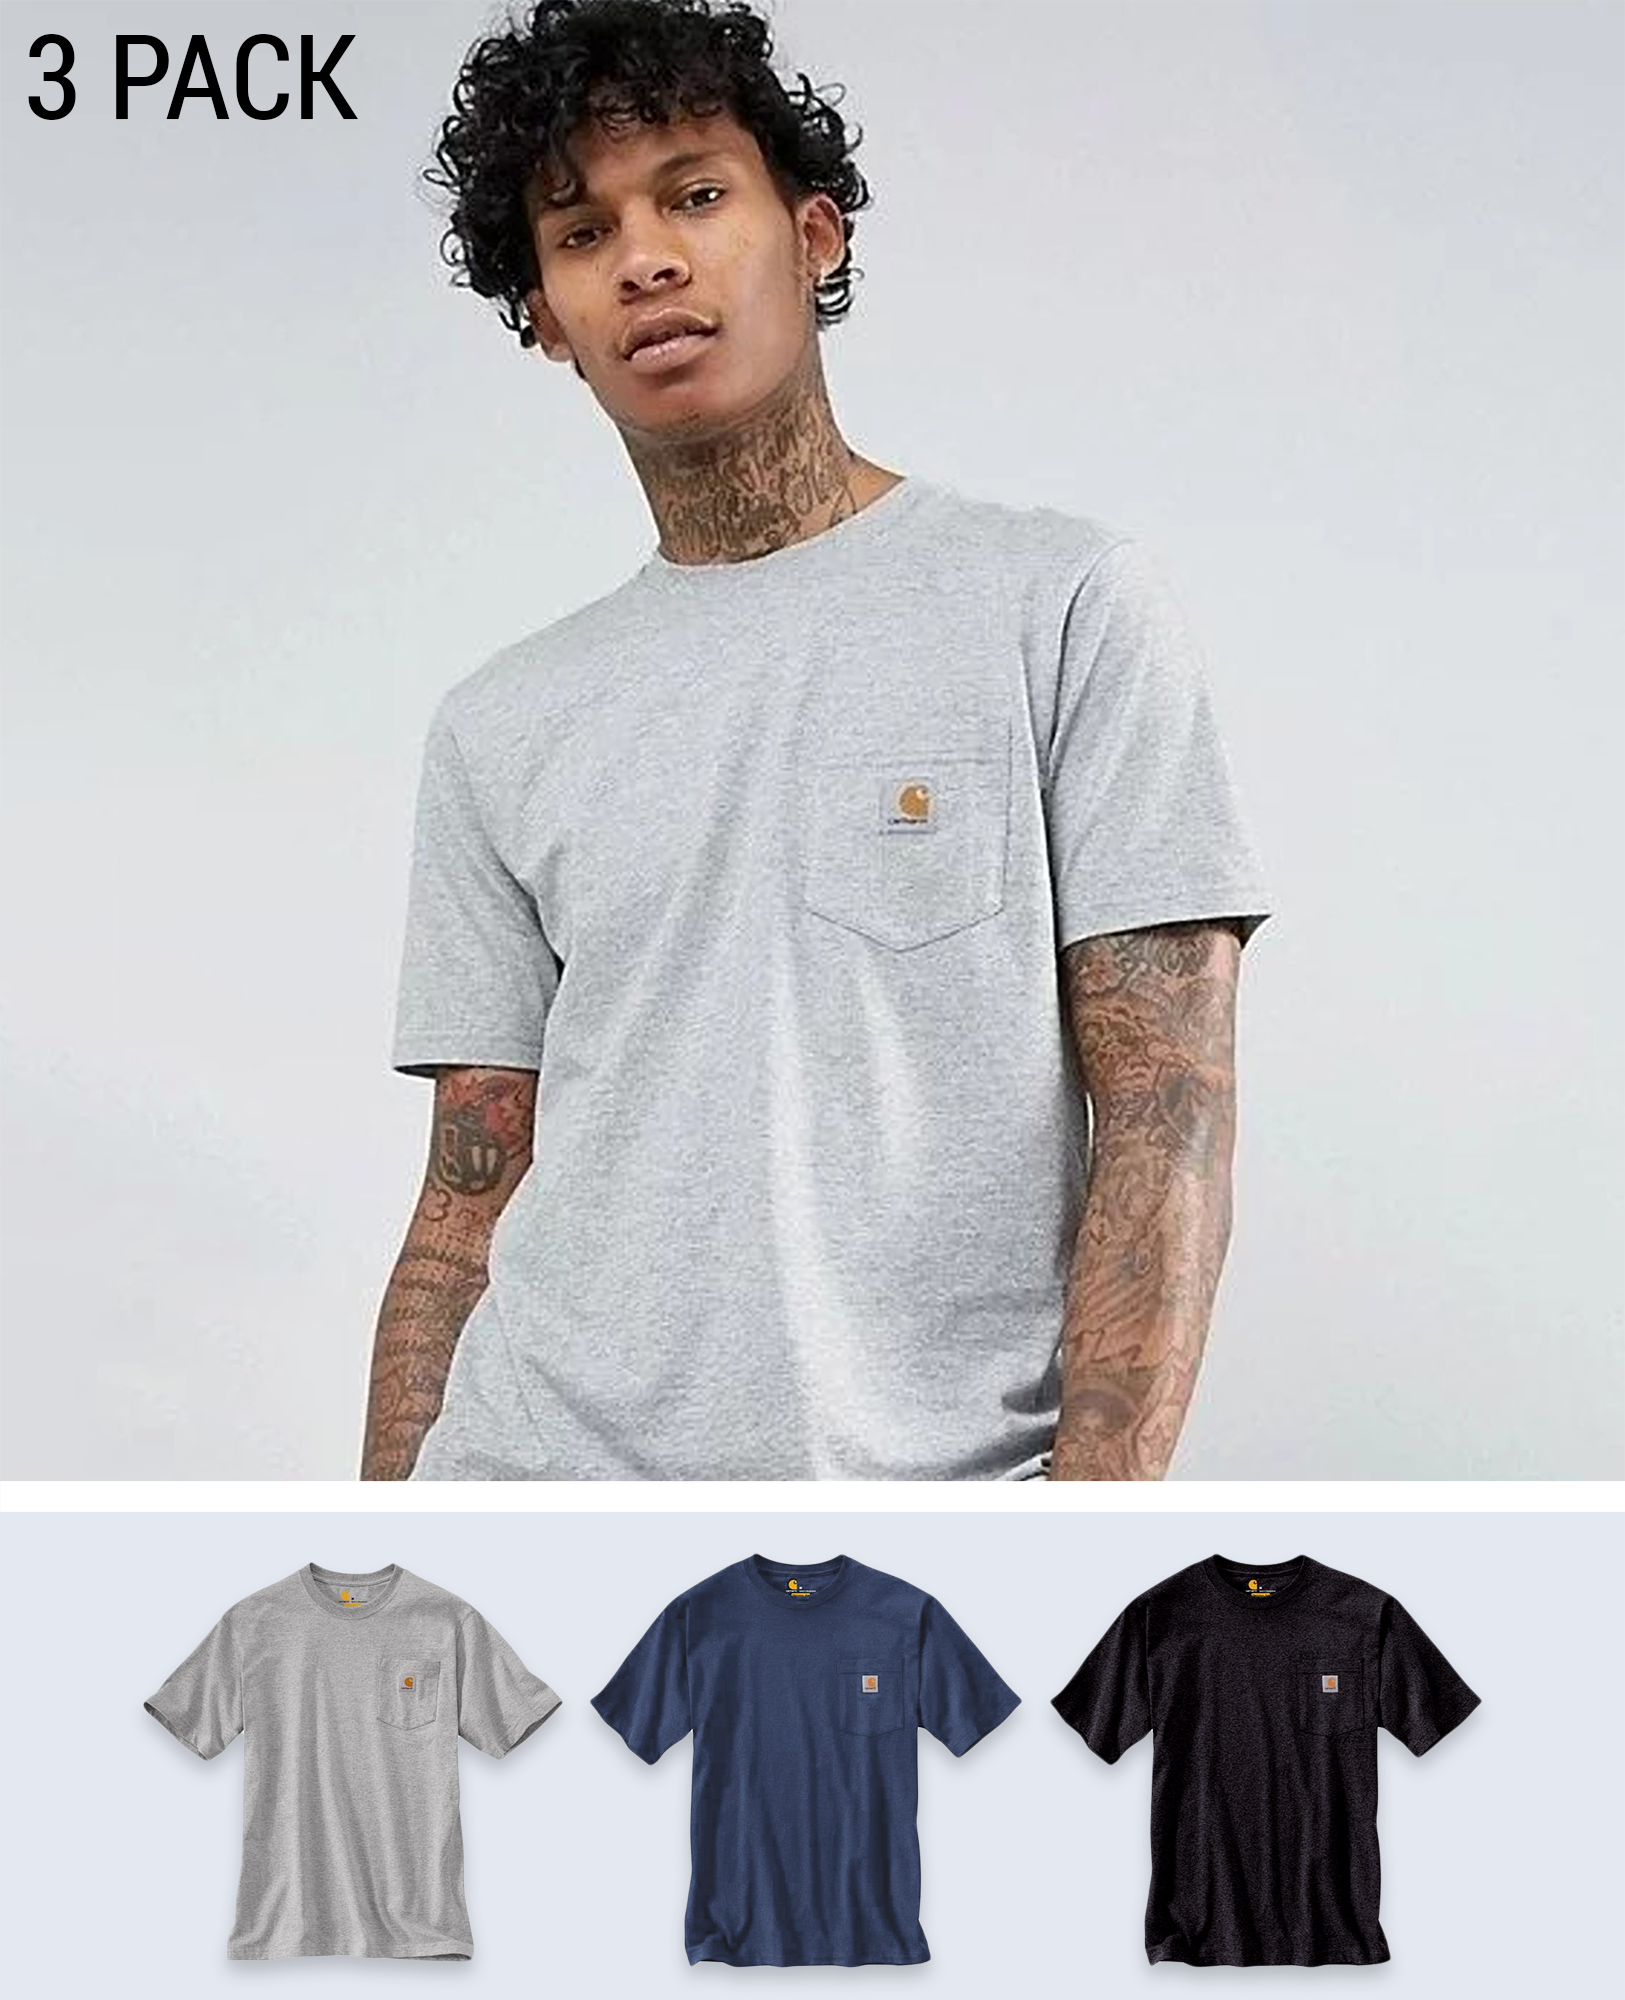 3 pack Heavyweight Pocket T-shirt - T-Shirts - Carhartt WIP - BRANMA